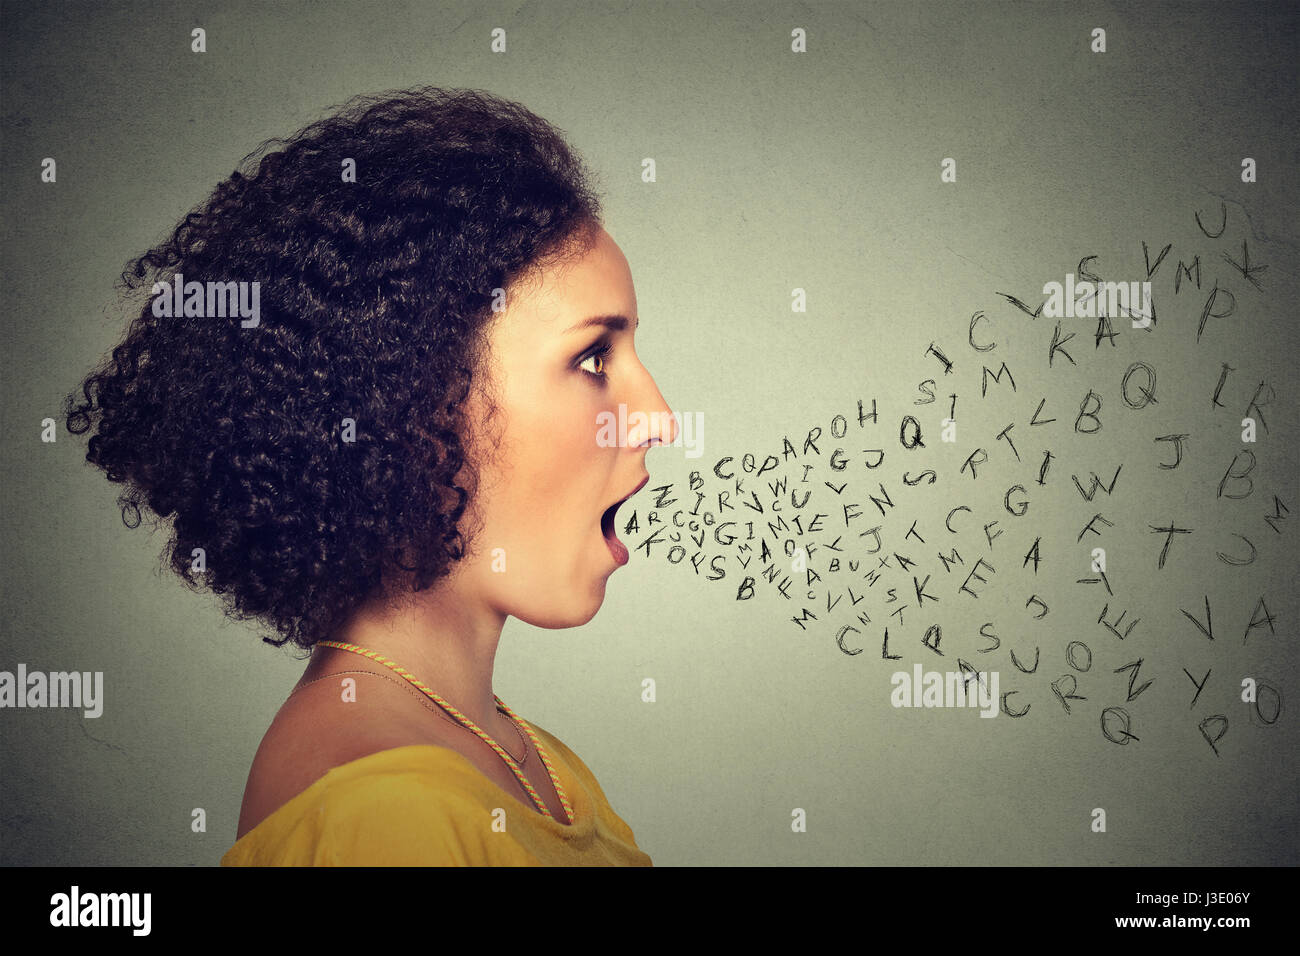 Woman talking with alphabet letters coming out of her mouth. Communication, information, intelligence concept - Stock Image